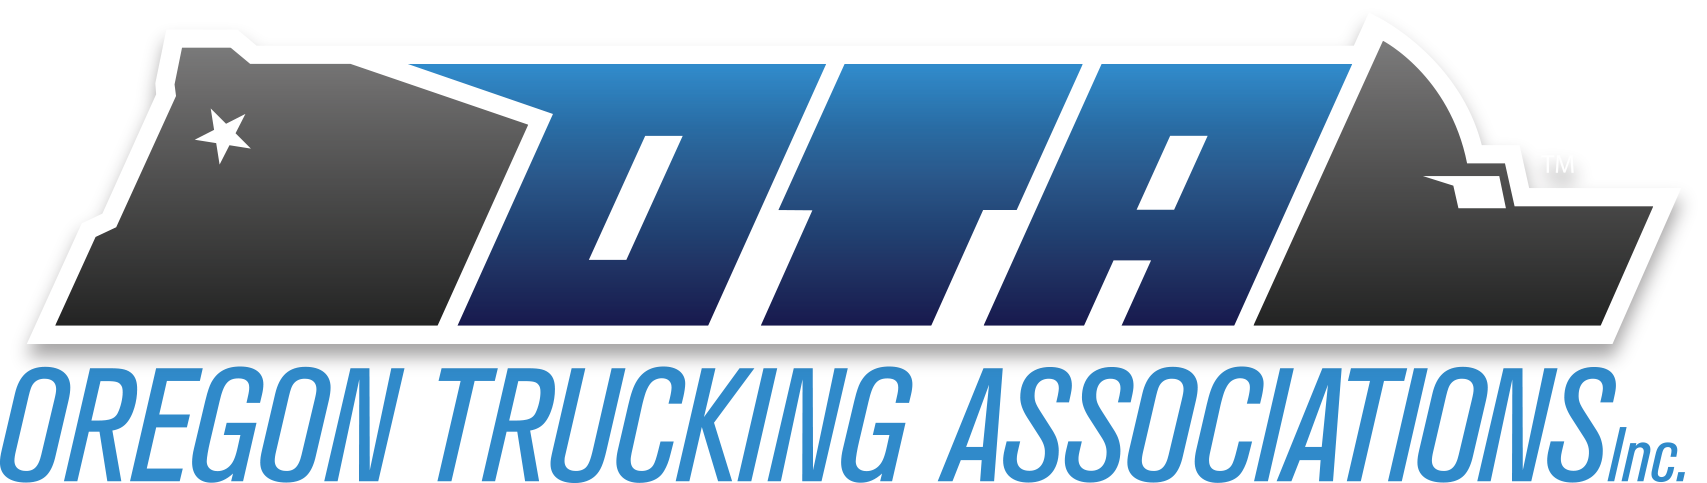 Oregon Trucking Associations, Inc. Logo